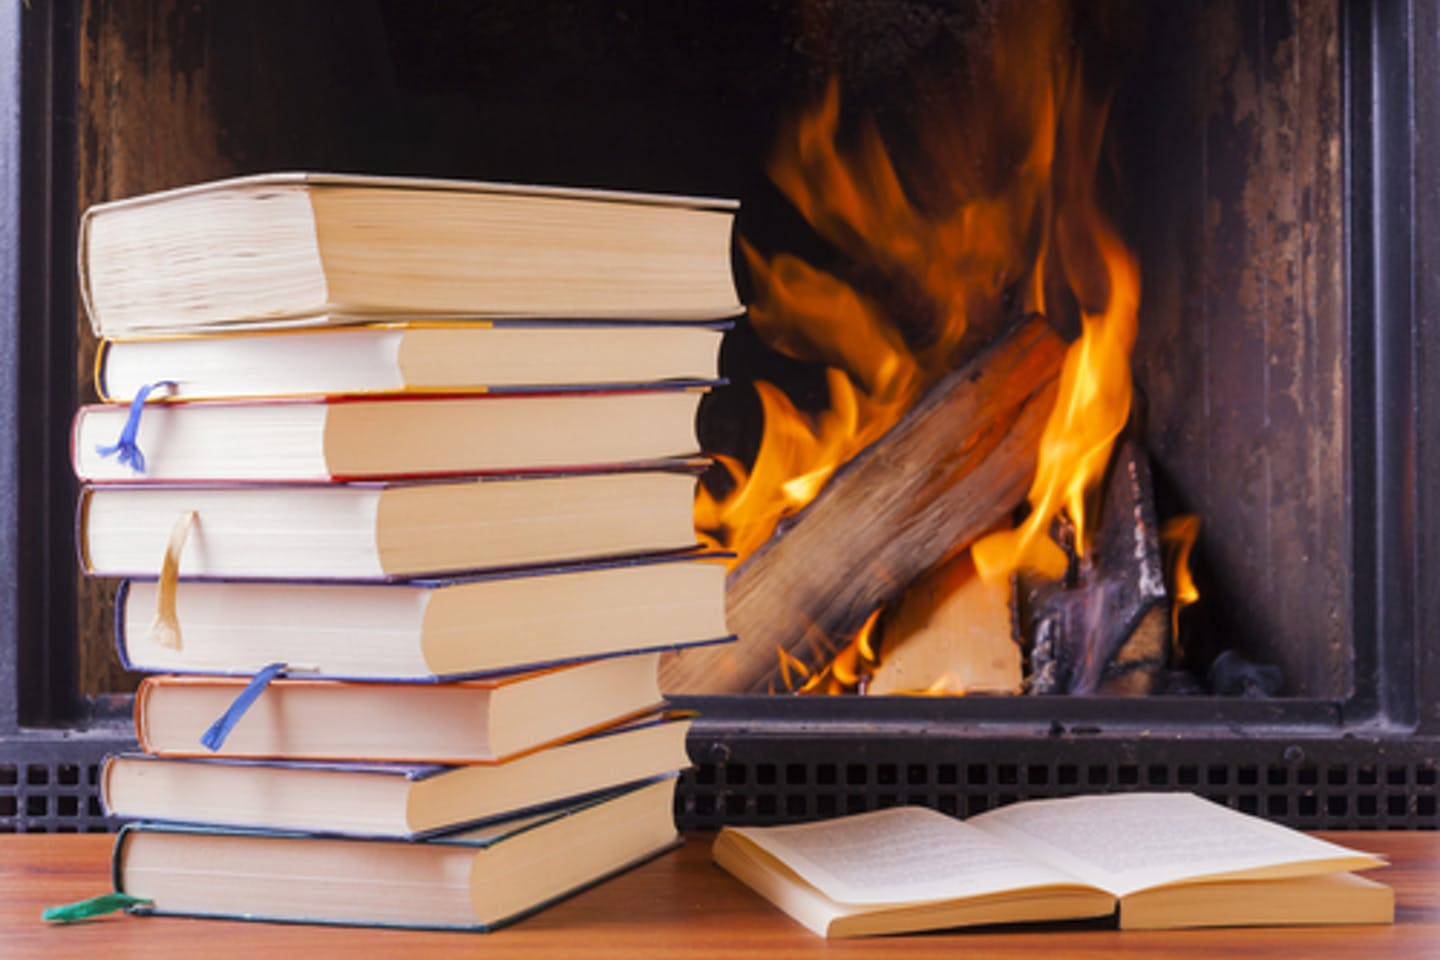 Burning books to stay warm